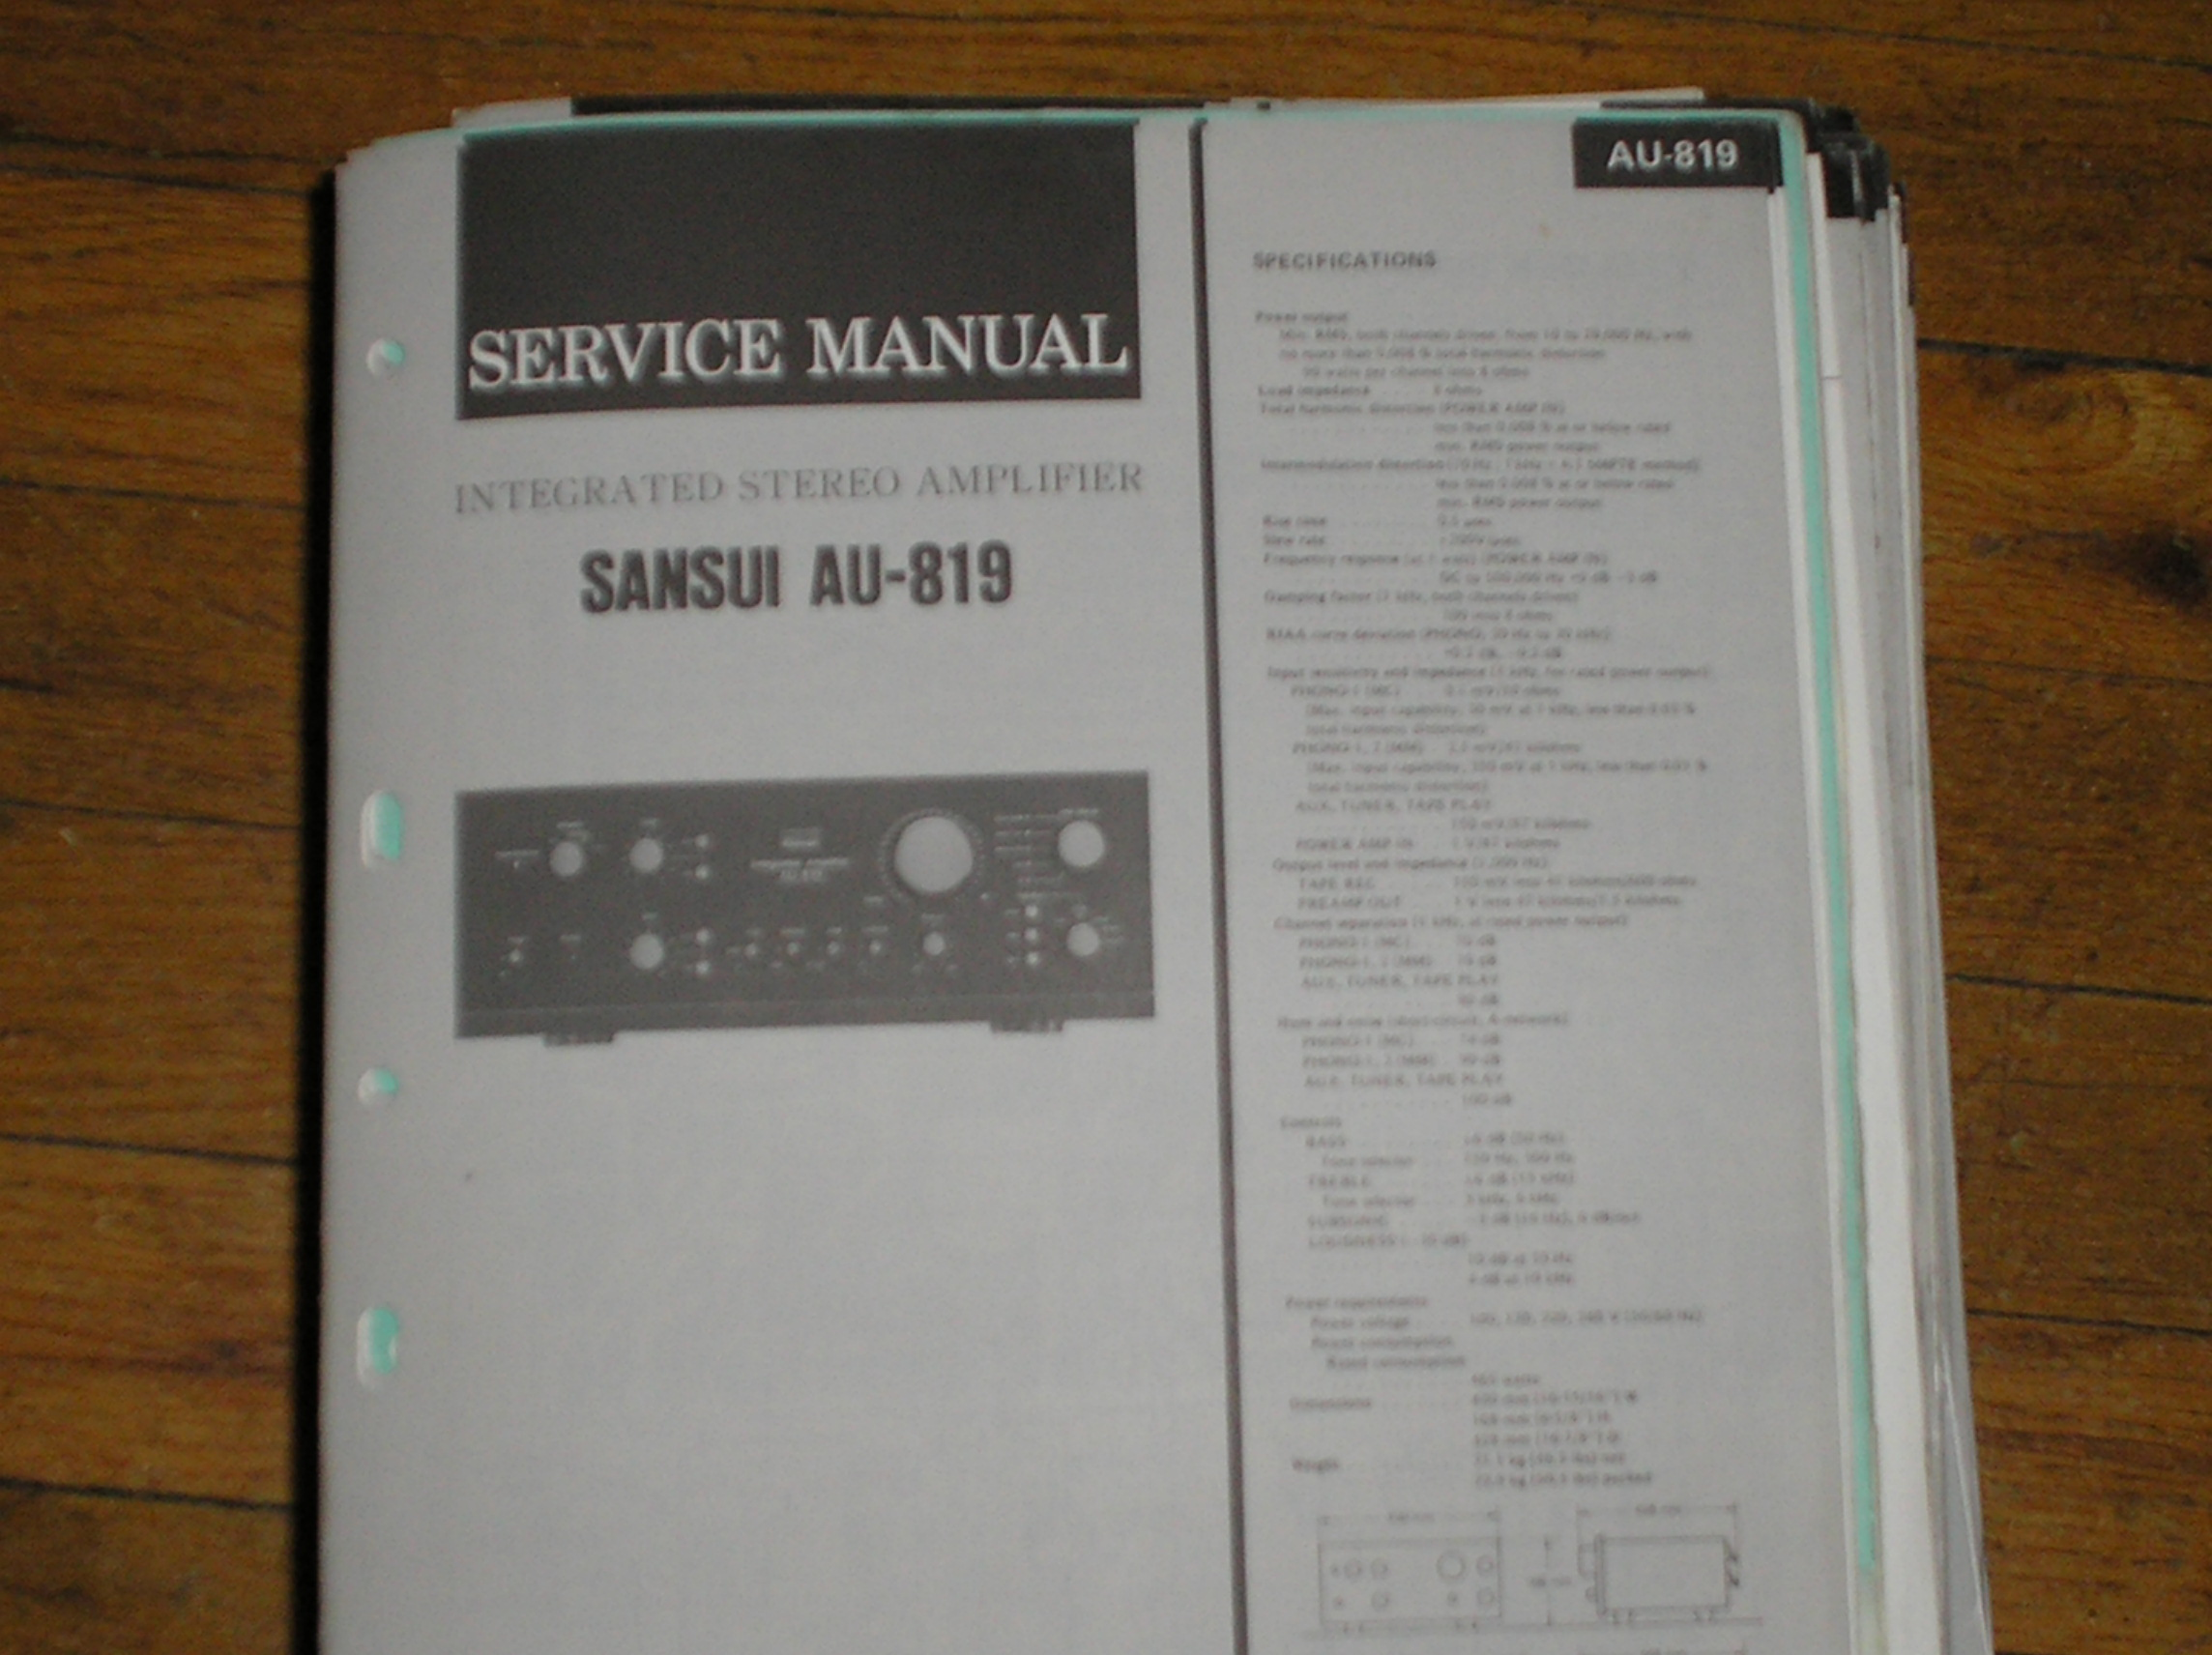 AU-819 Amplifier Service Manual